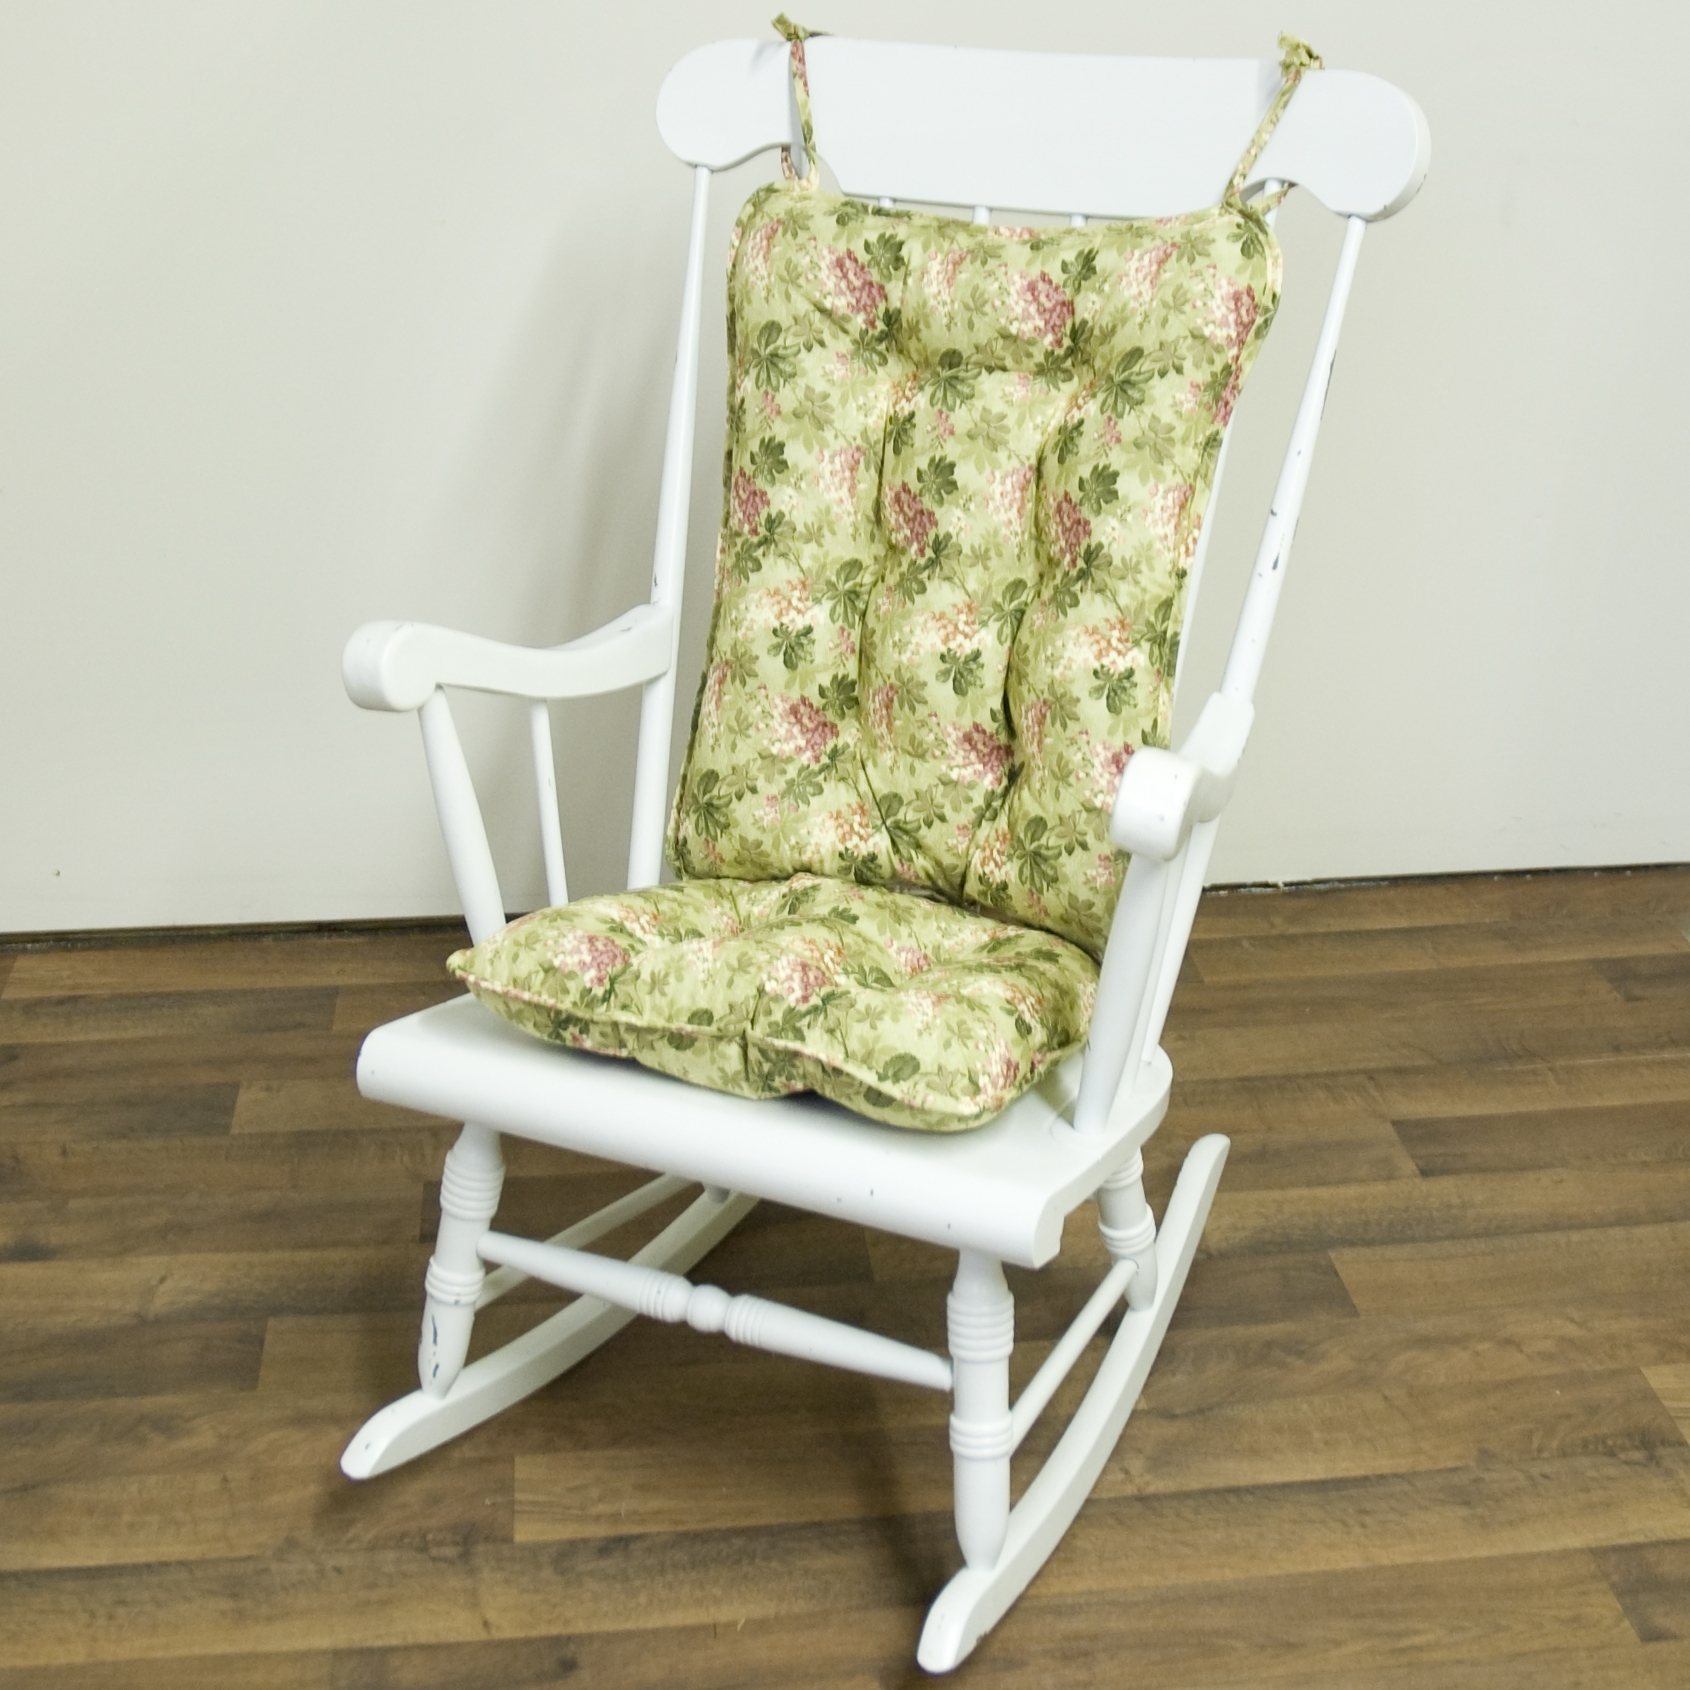 Outdoor Rocking Chair Cushions Flower : Beautiful Outdoor Rocking Throughout Rocking Chair Cushions For Outdoor (#7 of 15)